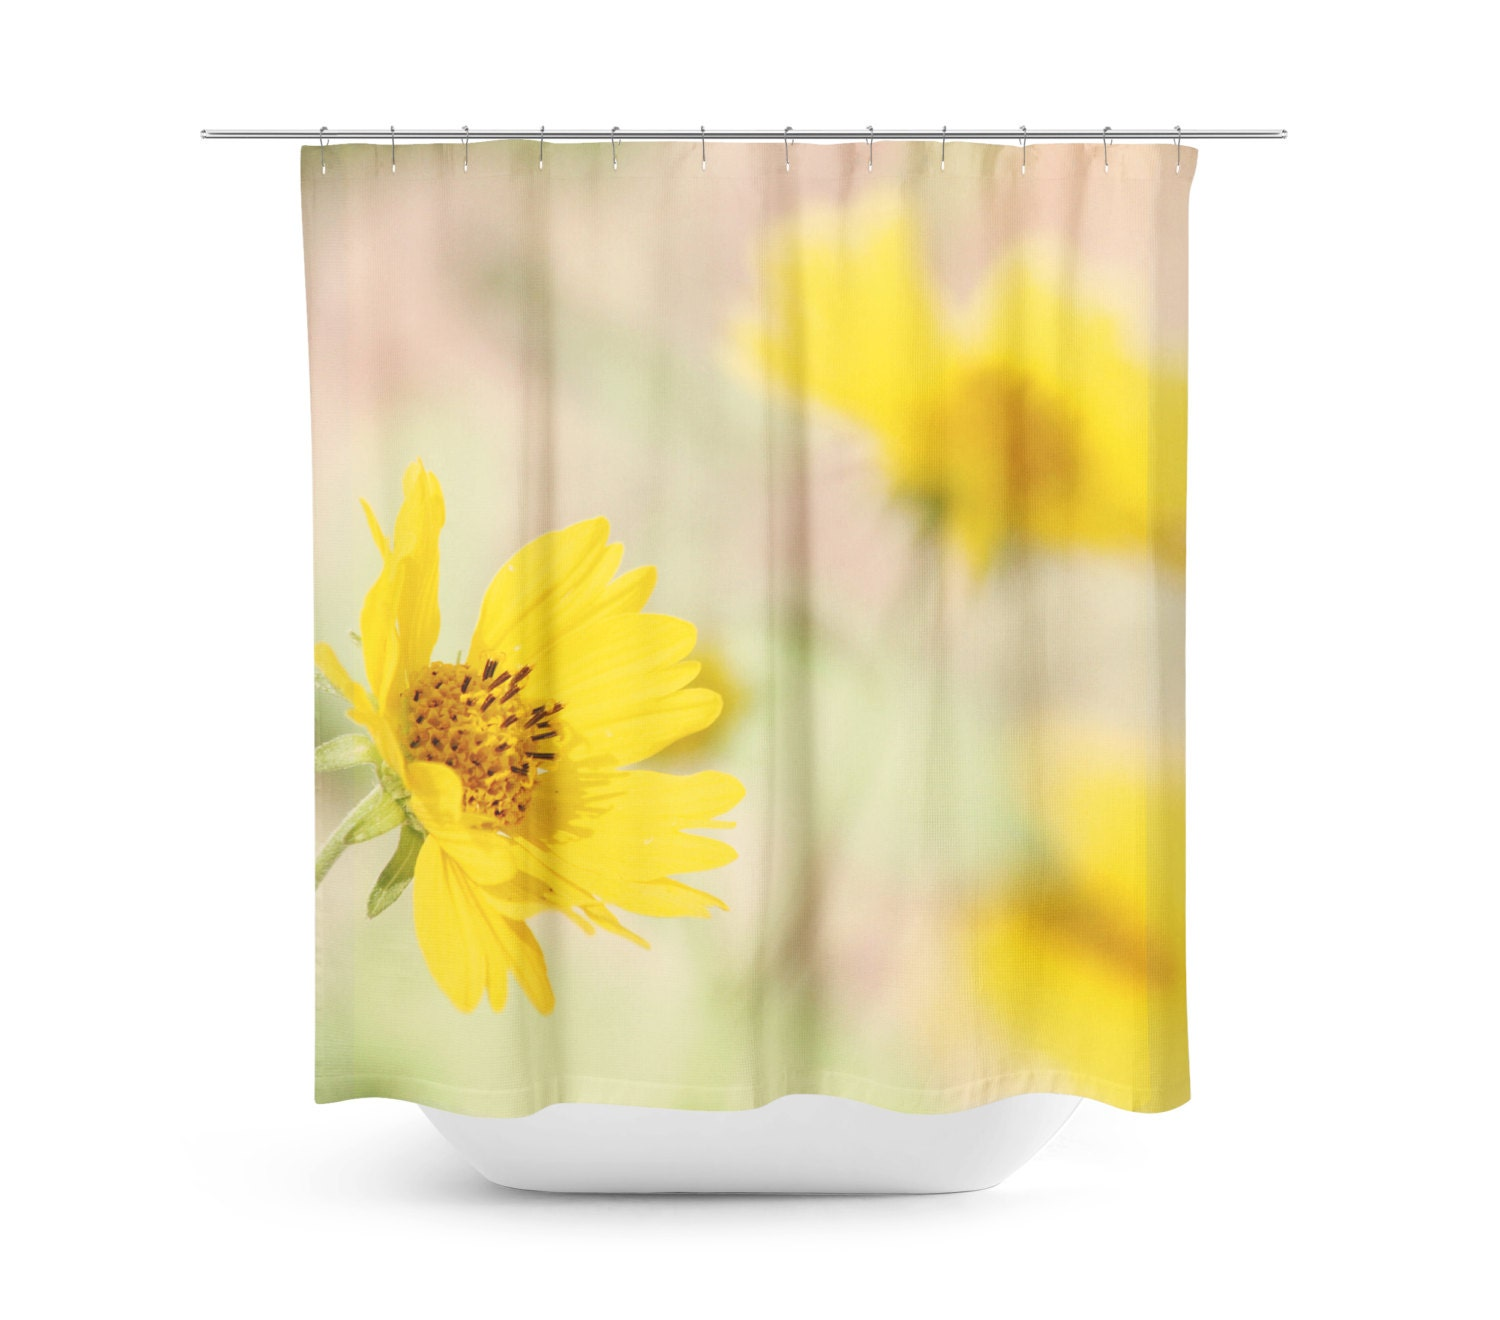 Yellow Flowers Shower Curtain Bright Floral